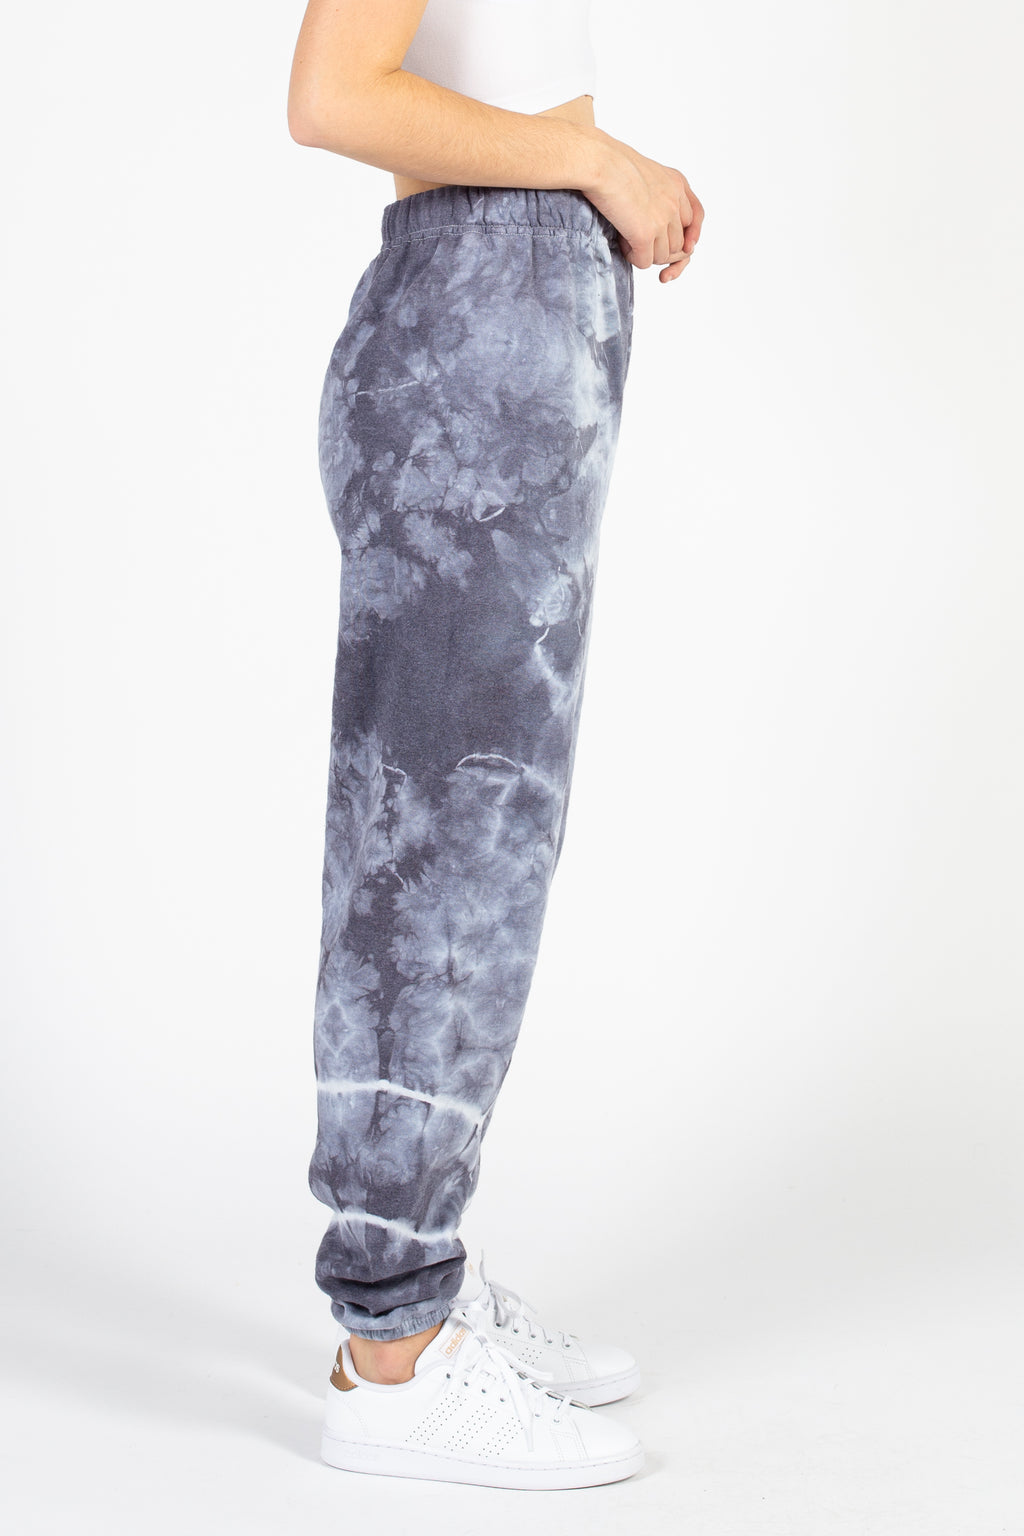 Tie Dye Sweatpants - honey